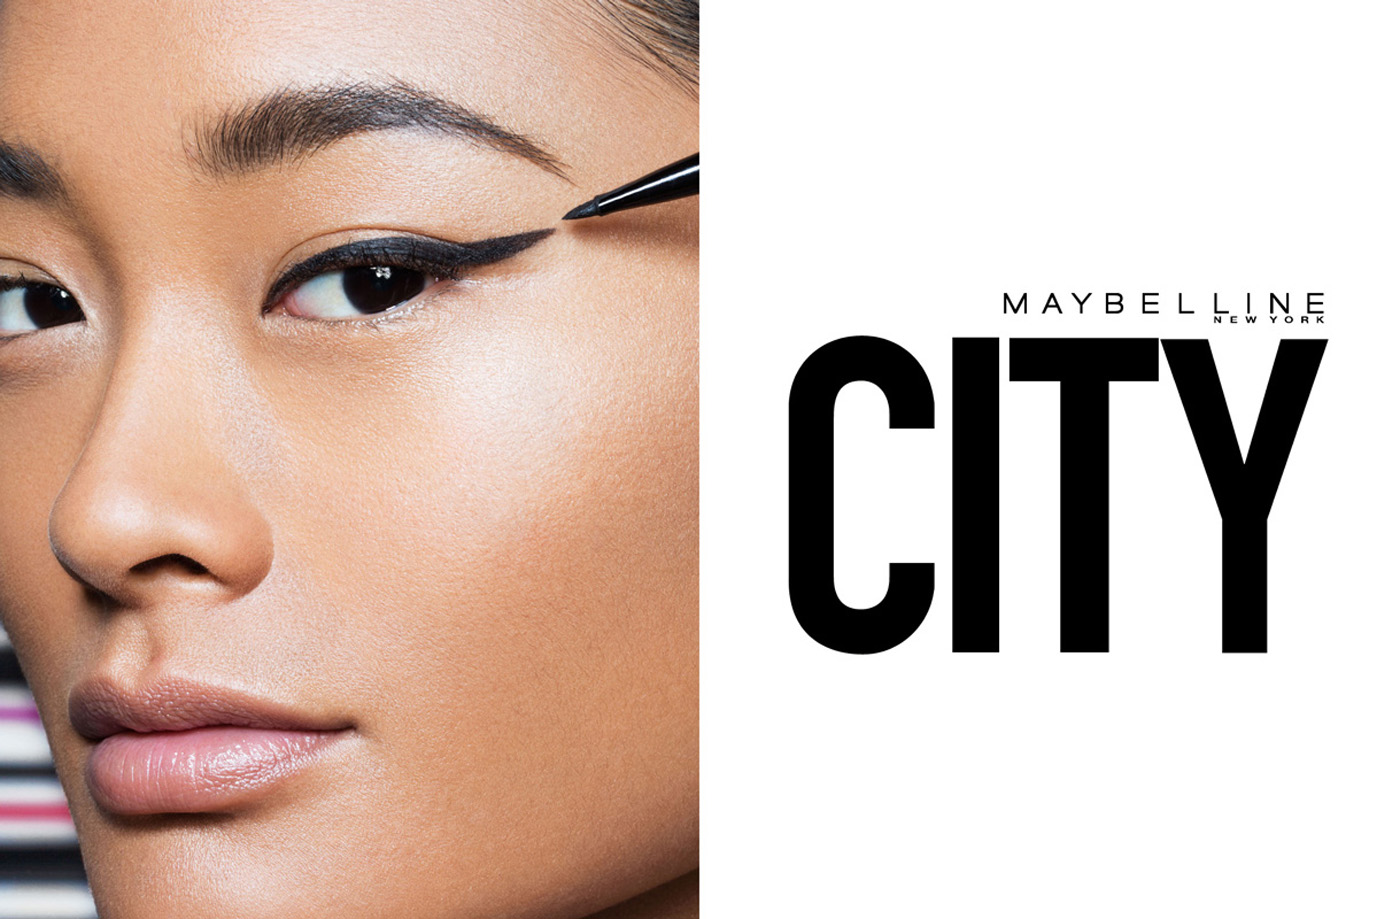 Complice -  Maybelline_CITY_04.jpg